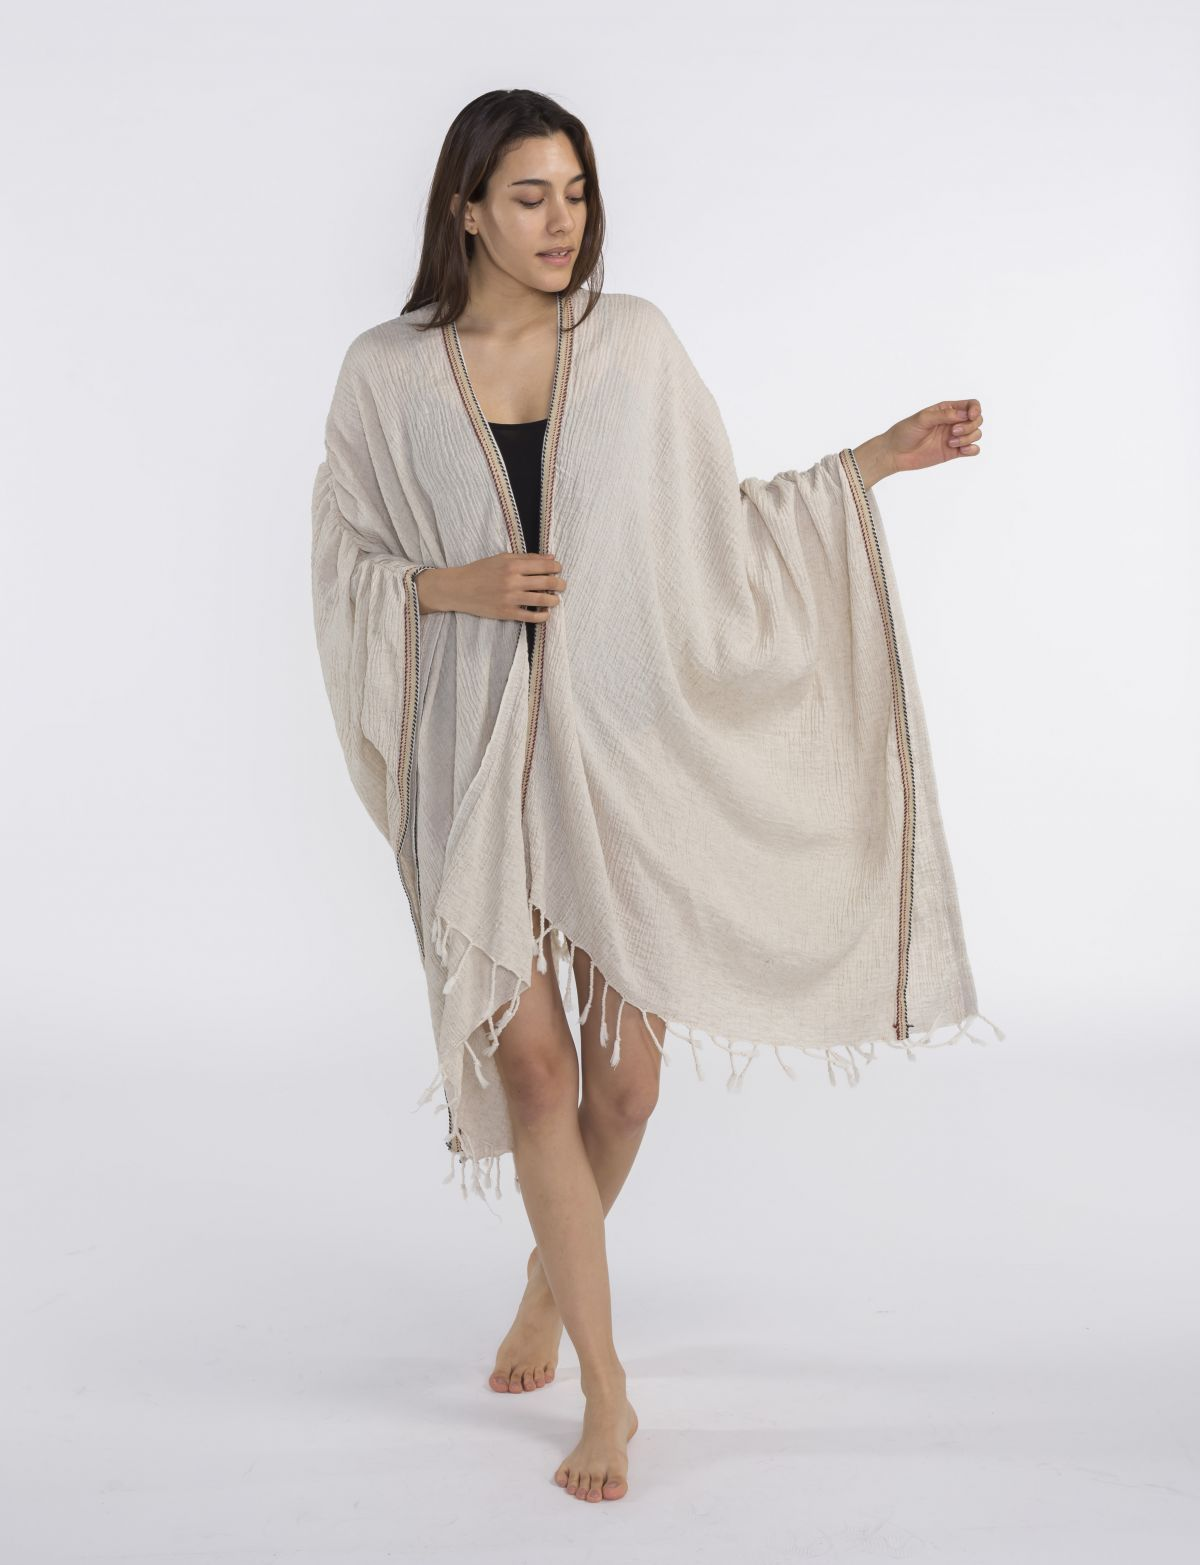 Tunic - Diva / Natural with colored pippings